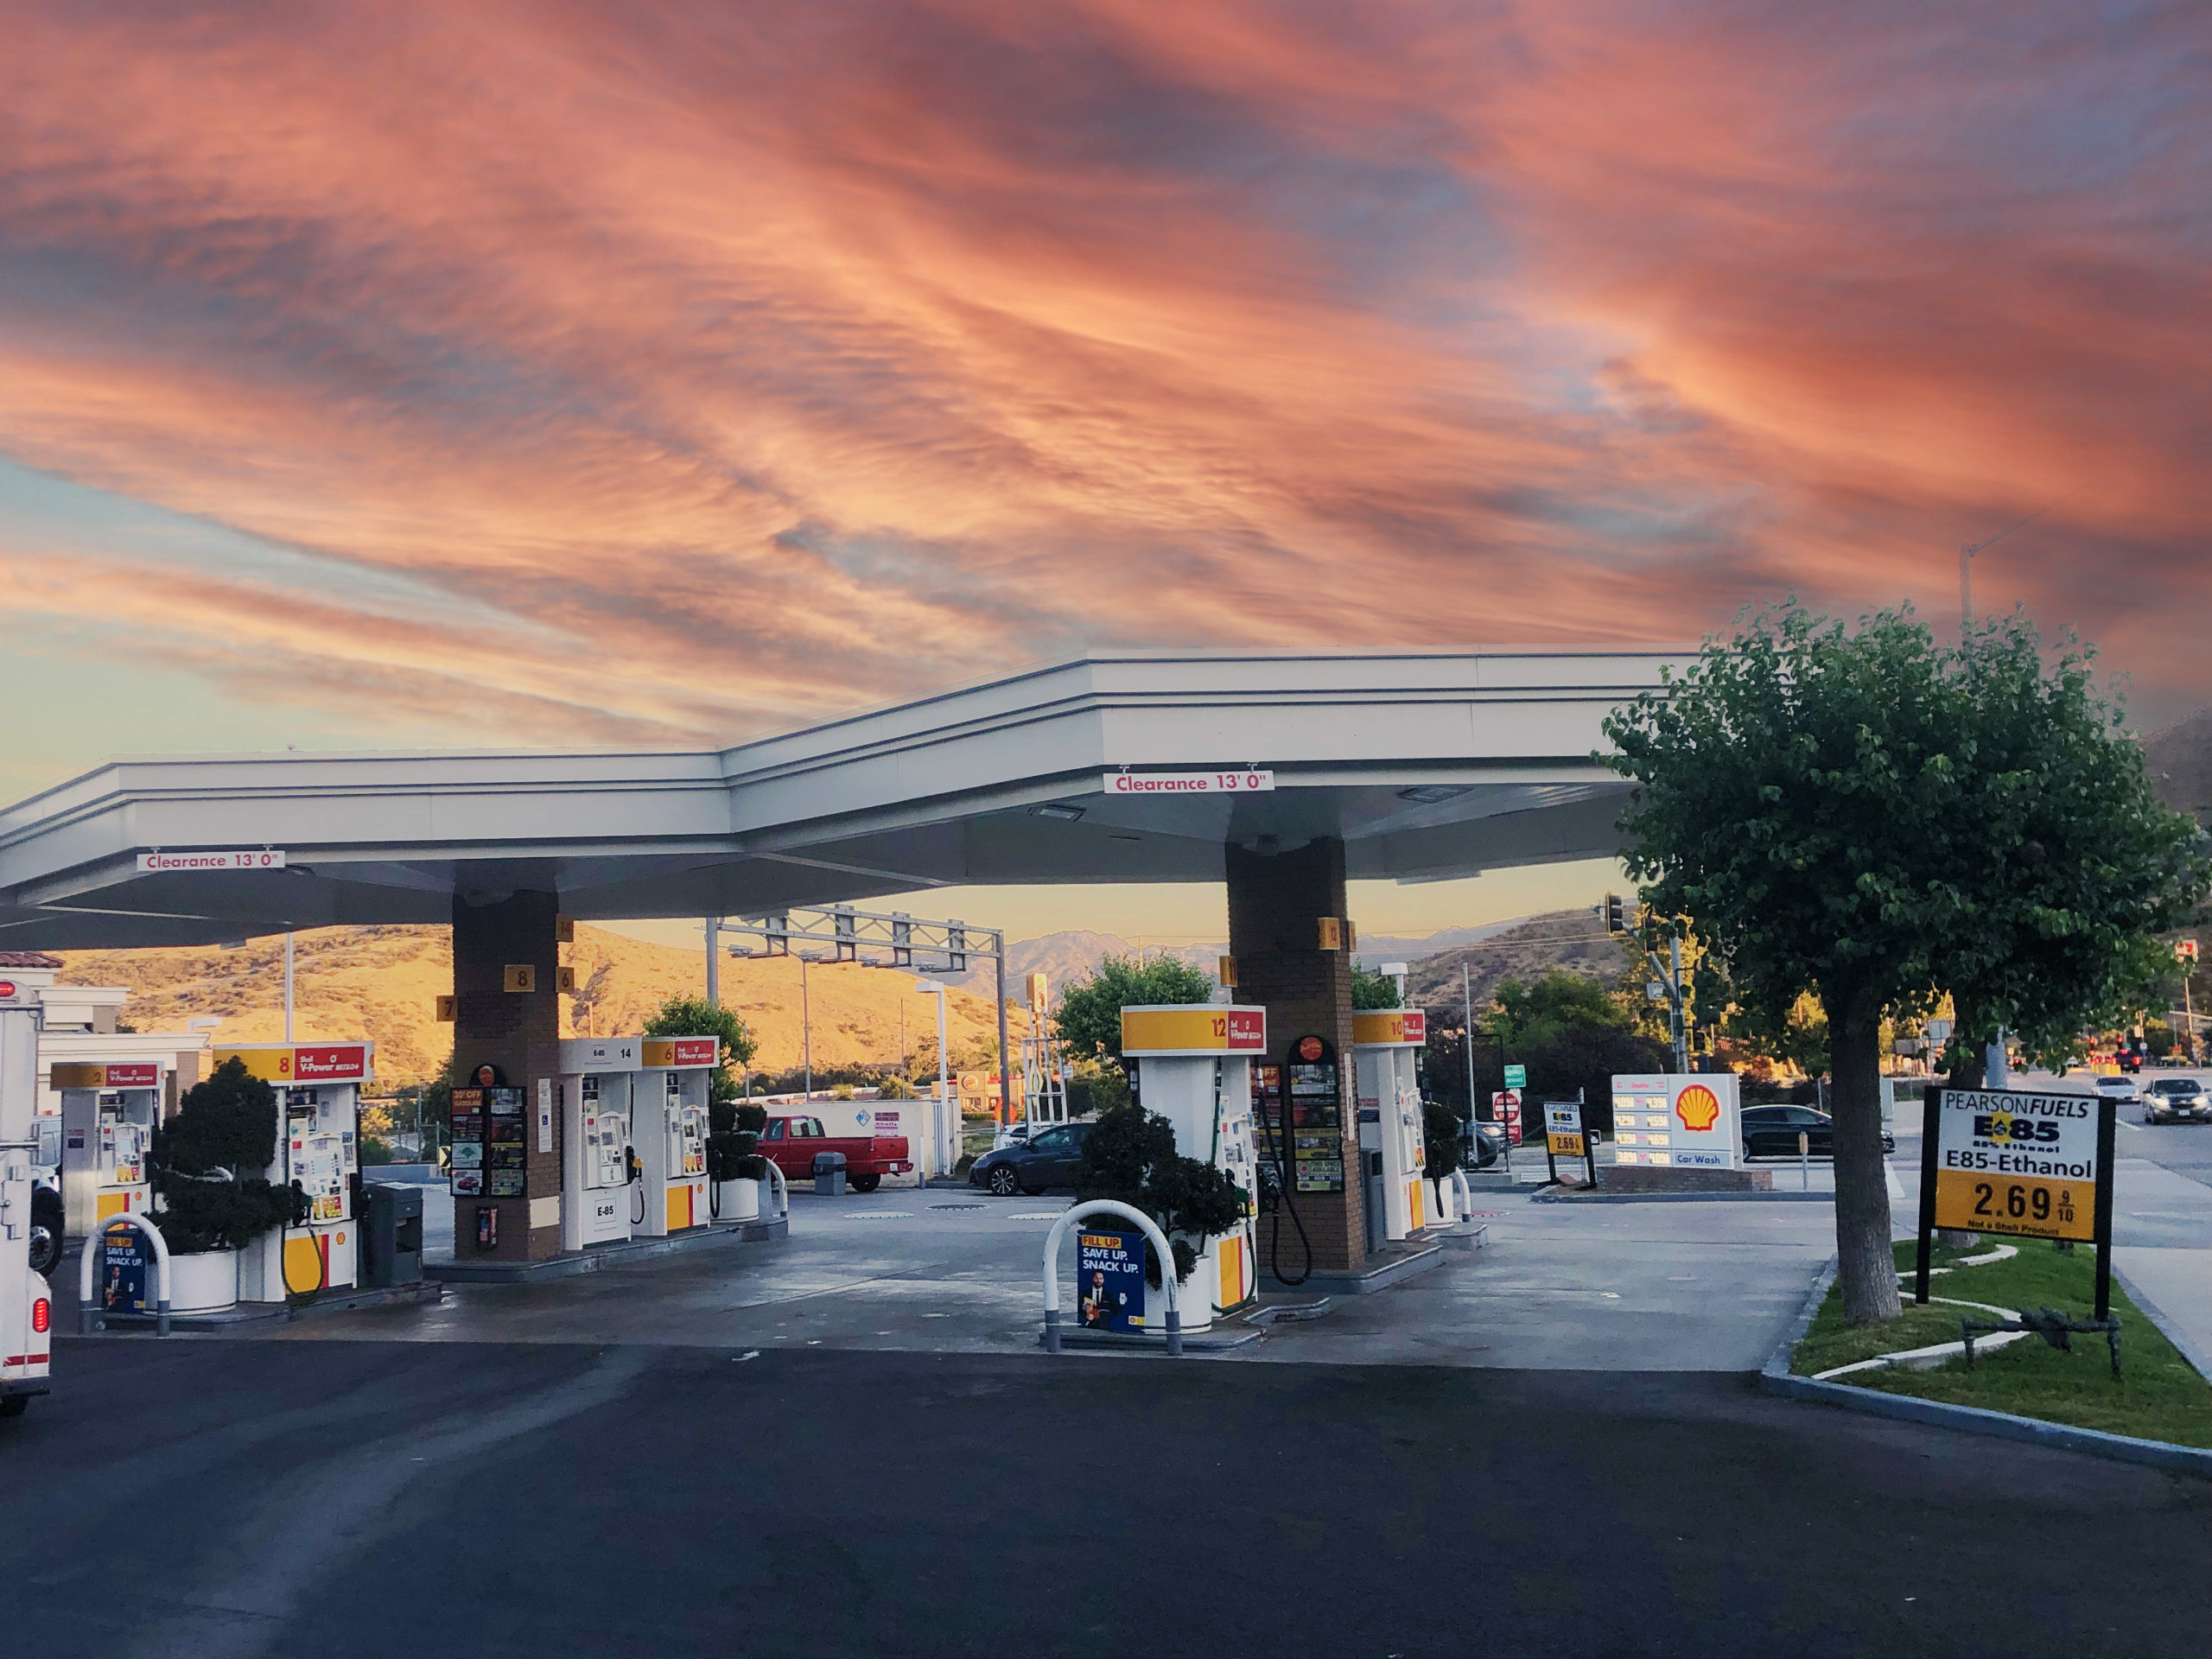 Fuel station in Agoura Hills, California